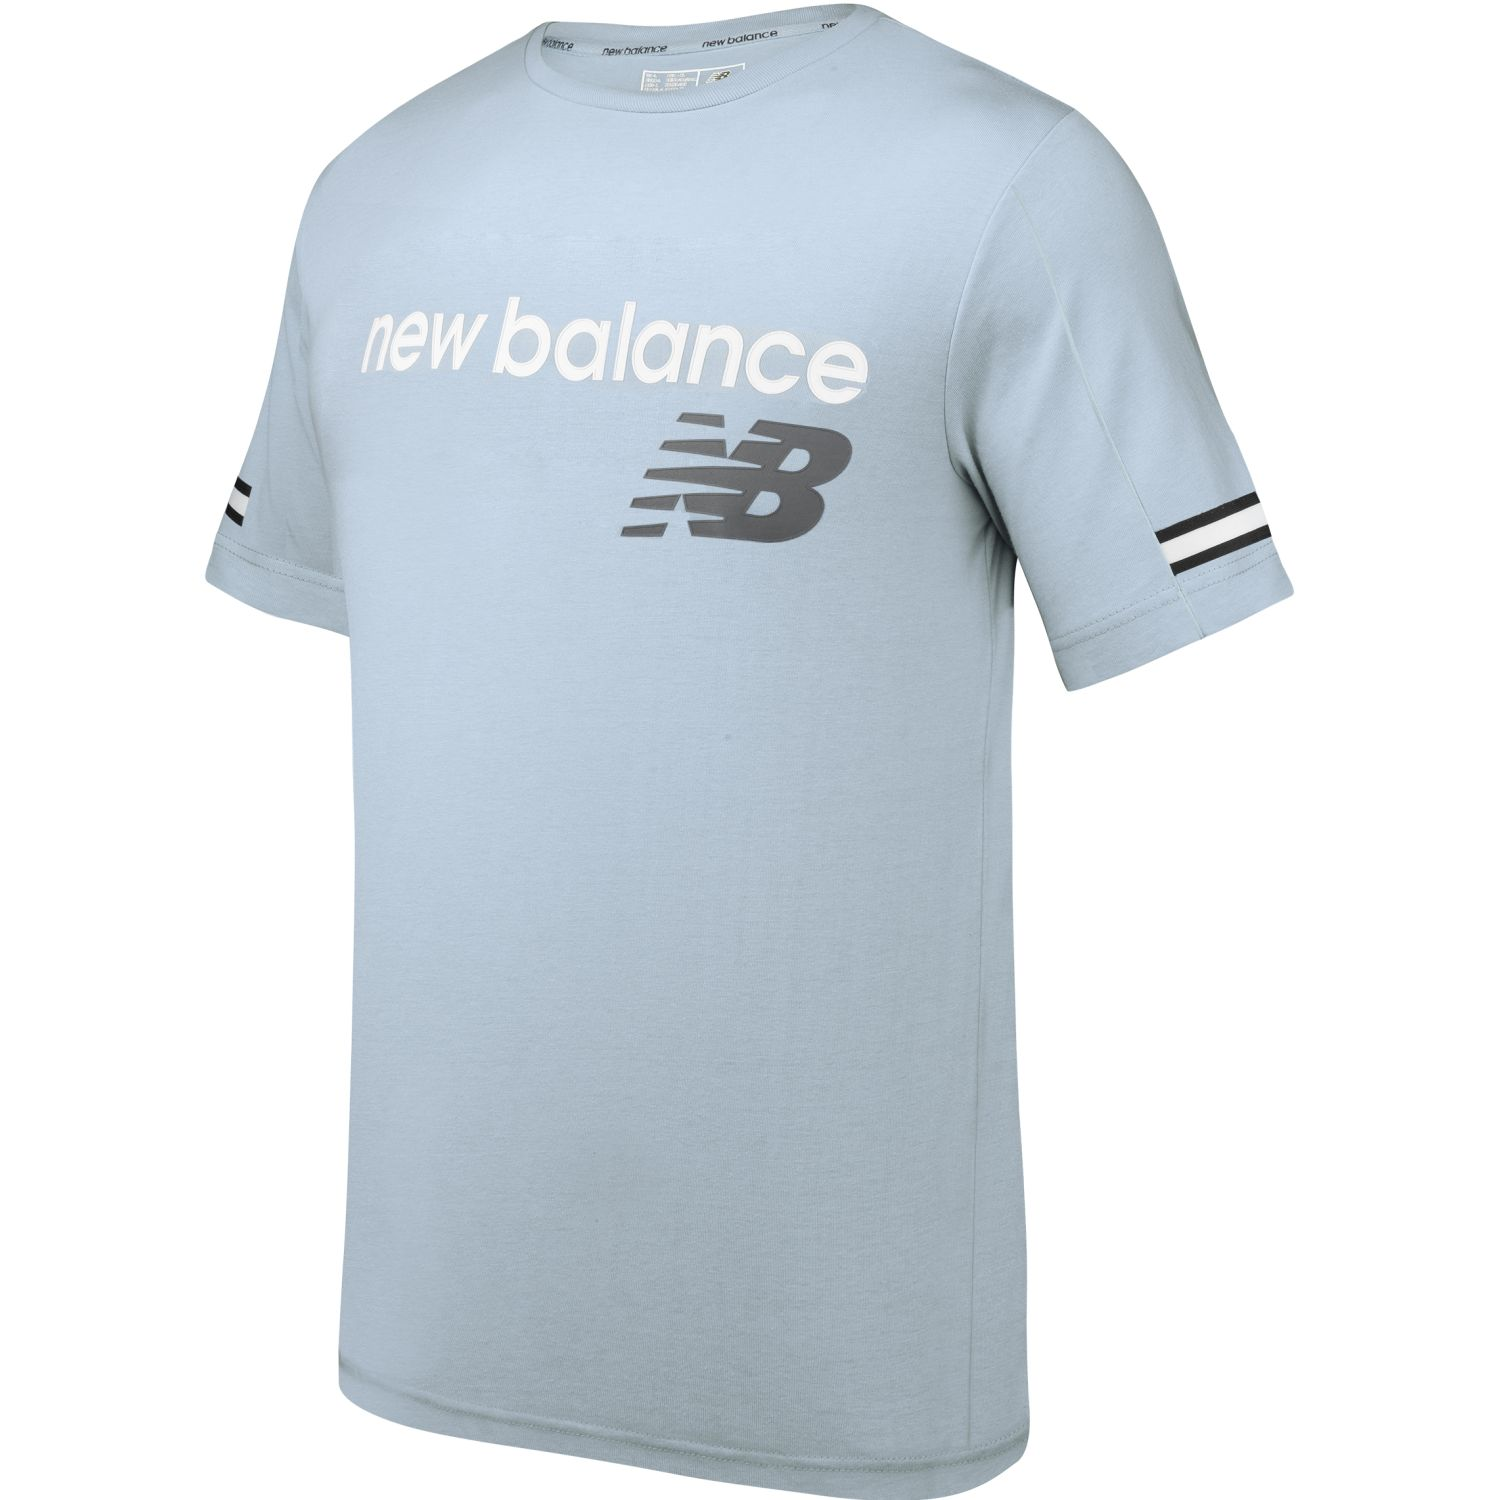 New Balance Polera Essentials Celeste Hoodies Deportivos